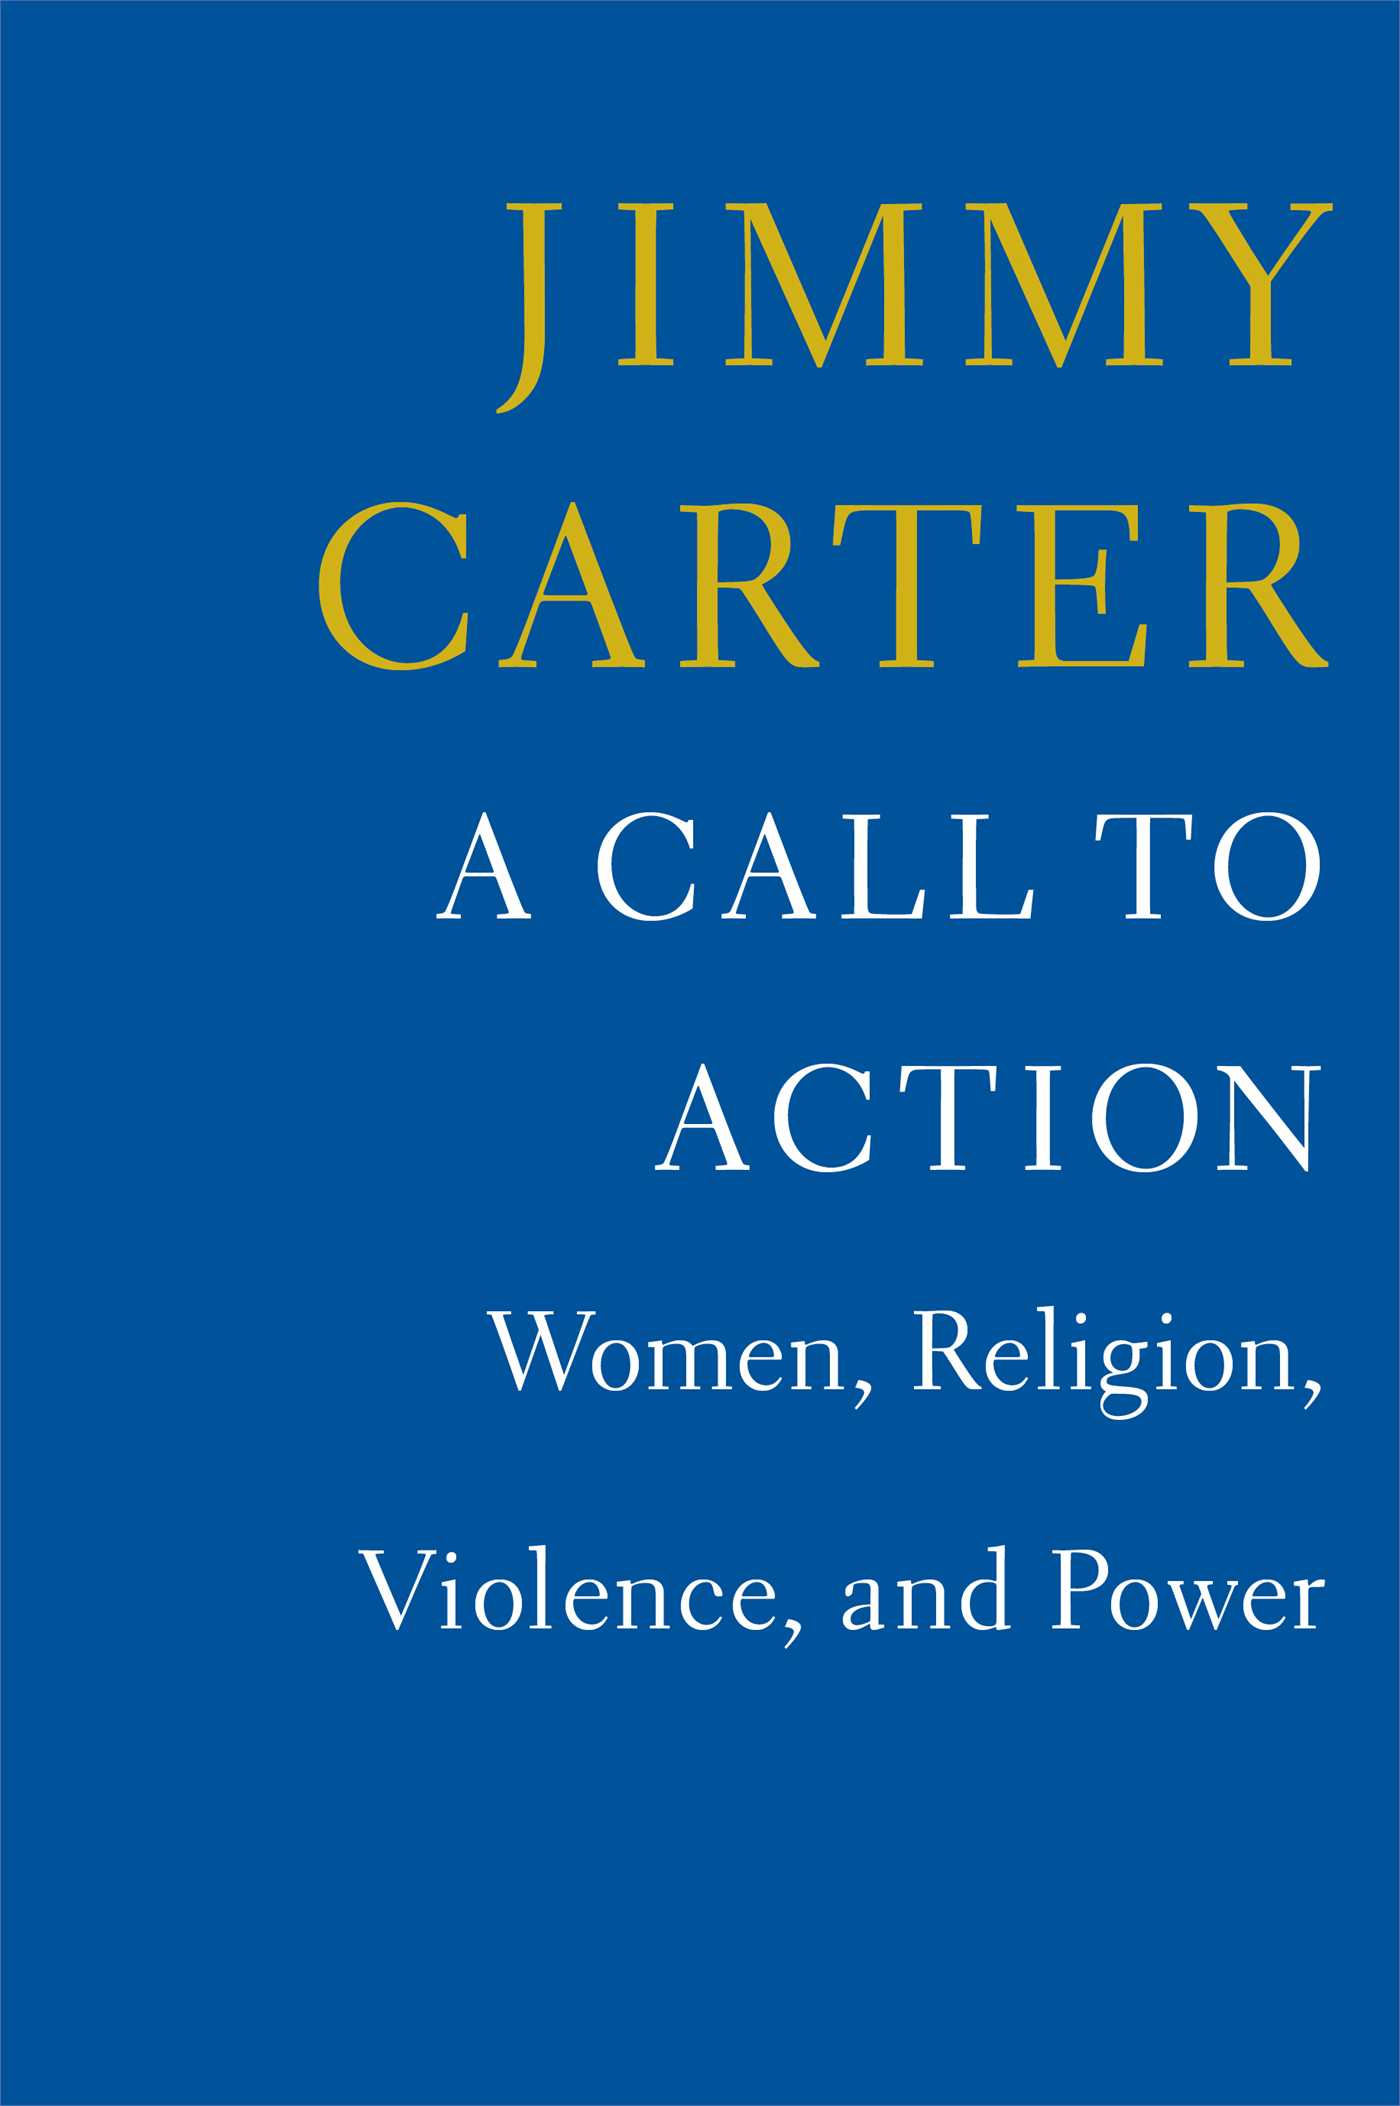 A Call to Action Women,  Religion,  Violence,  and Power